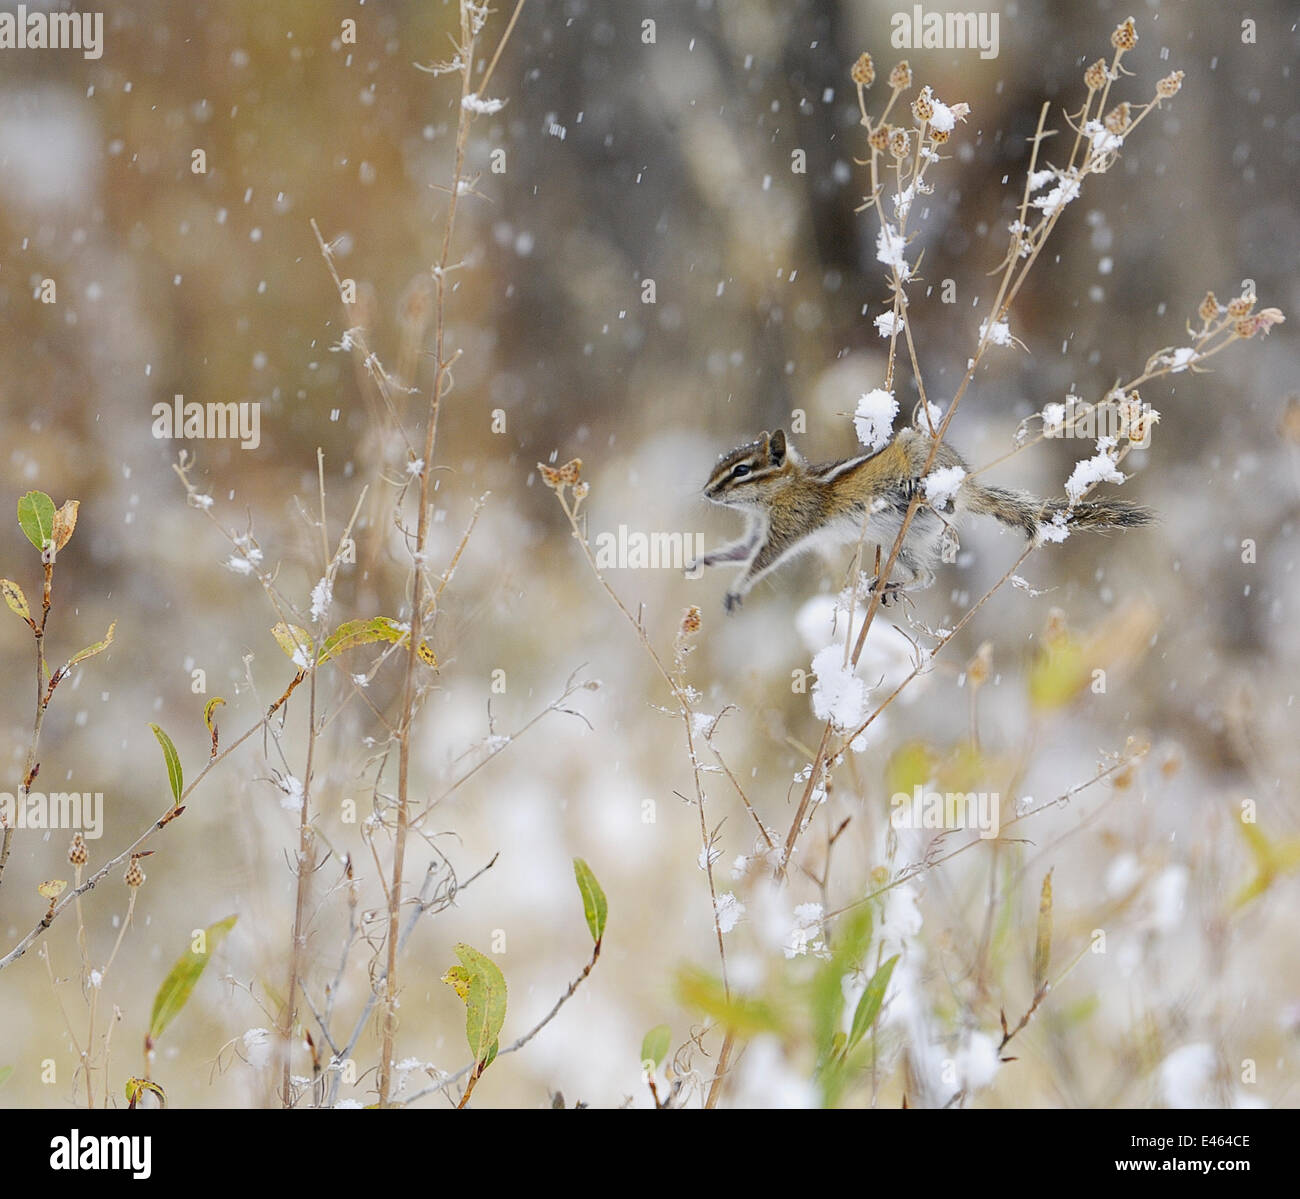 Least Chipmunk (Tamius minimus) feeding on the seeds of a thistle bush during a snowstorm, Grand Teton NP, Wyoming, - Stock Image